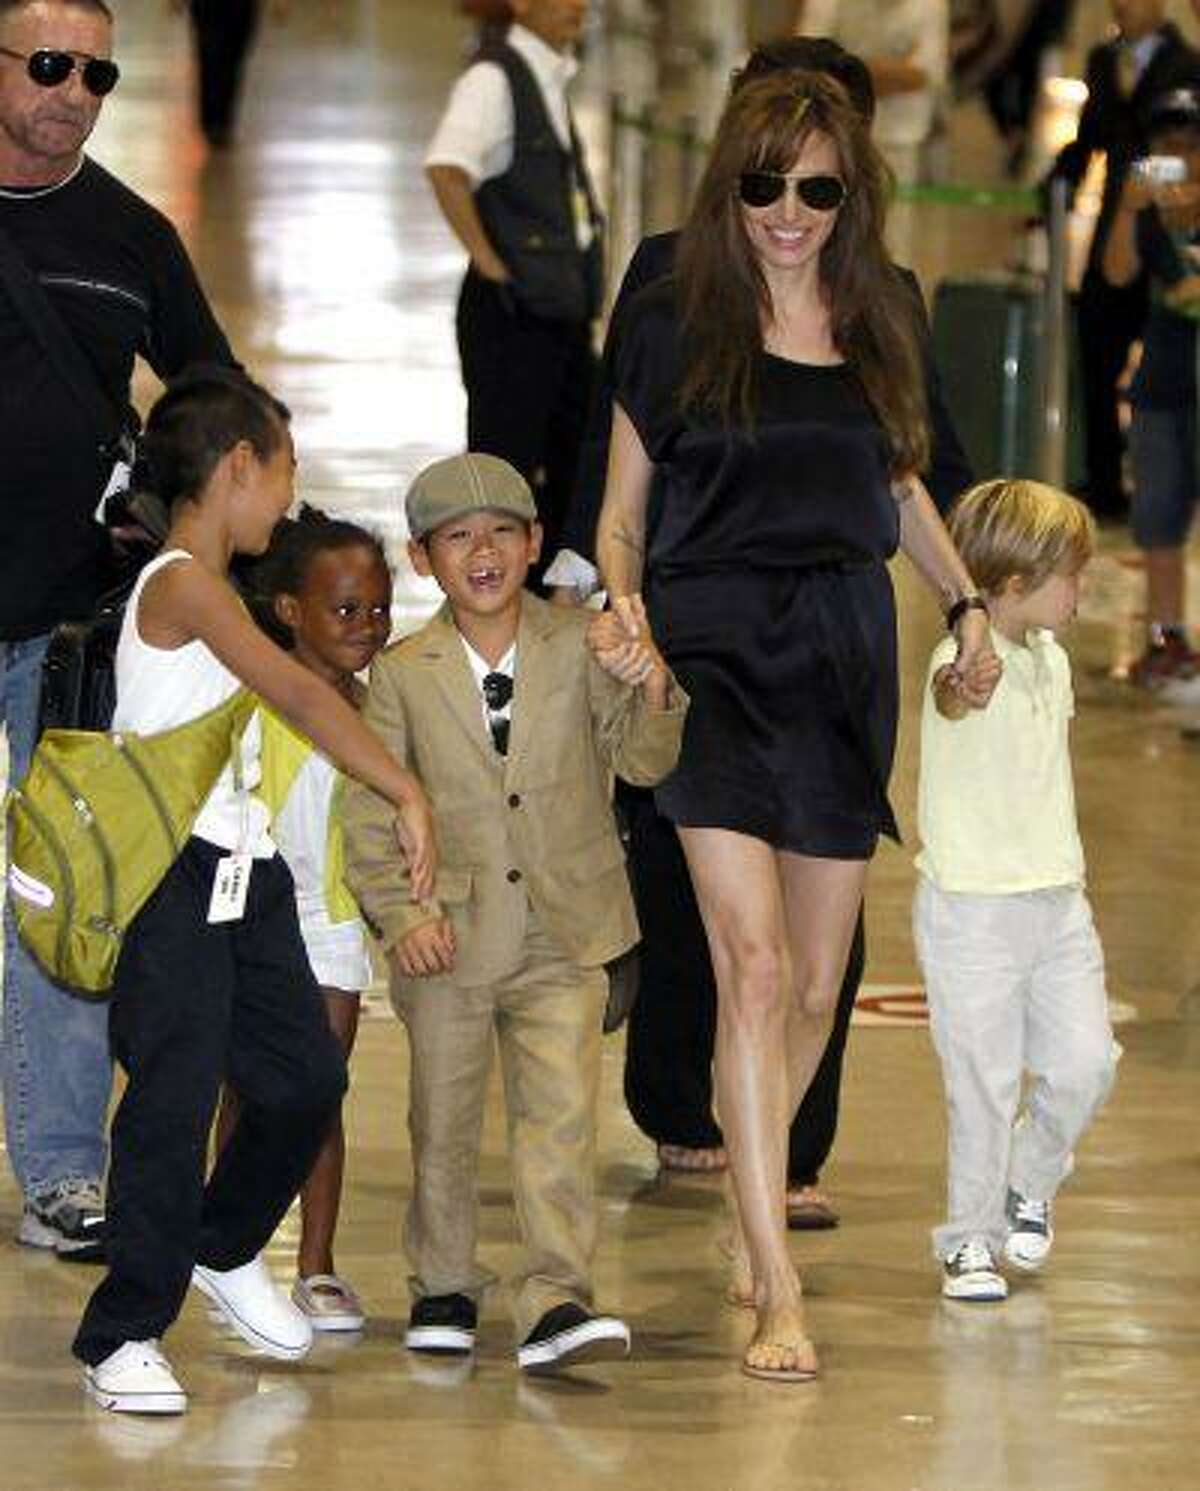 U.S. actress Angelina Jolie (2nd R) arrives with her children Maddox, Zahara, Pax Thien and Shiloh (L-R) at New Tokyo International Airport in Narita, east of Tokyo, in this July 26, 2010 file photo. Oscar-winning actress Jolie said on May 14, 2013 that she had undergone a preventive double mastectomy after finding out she had a gene mutation that leads to a sharply higher risk of both breast and ovarian cancer.